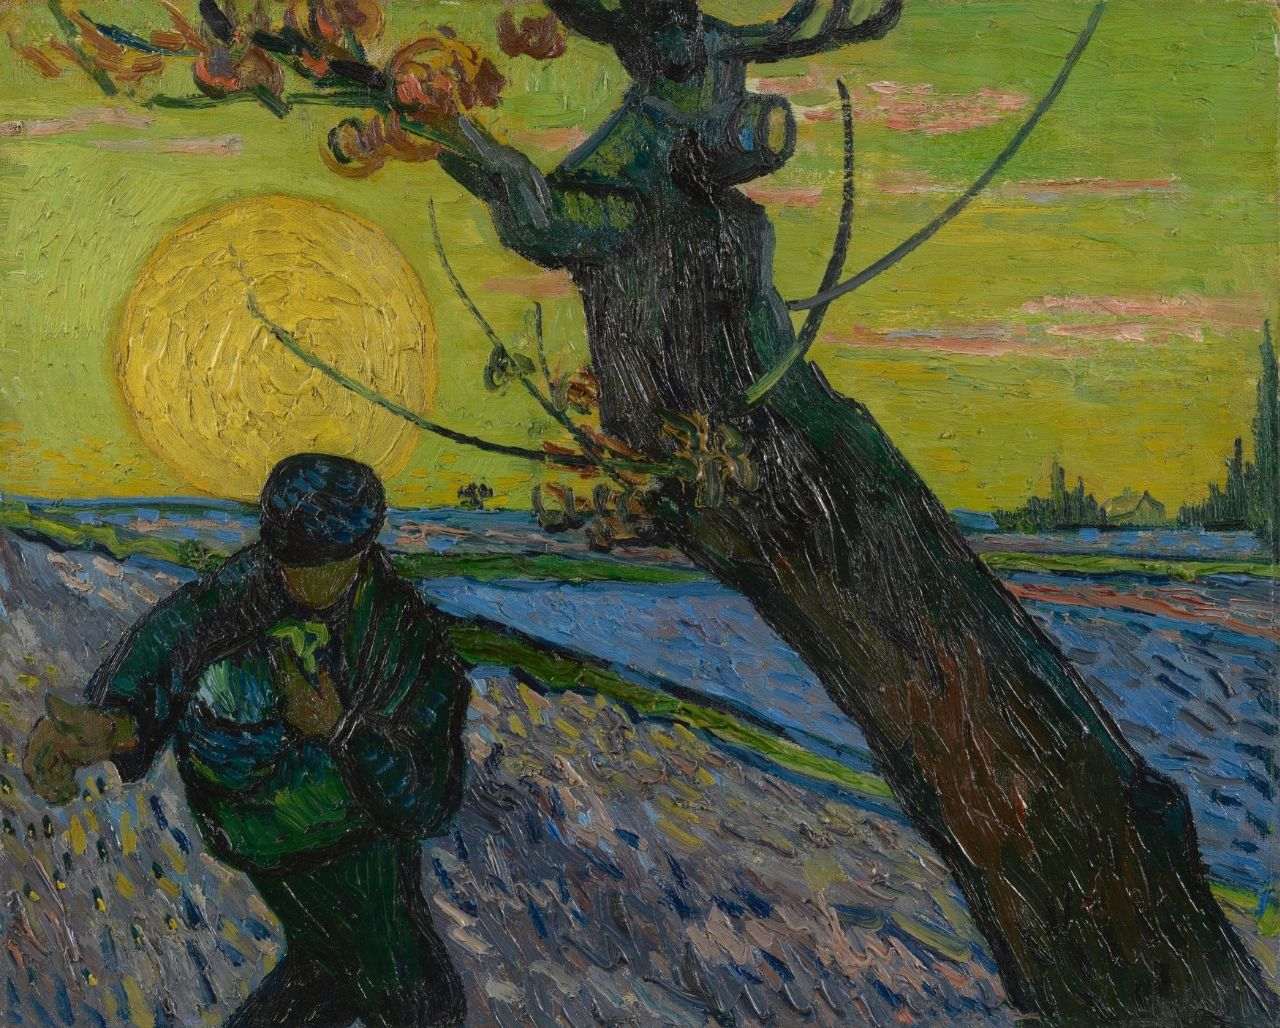 Vincent van Gogh - The Sower - Van Gogh Museum